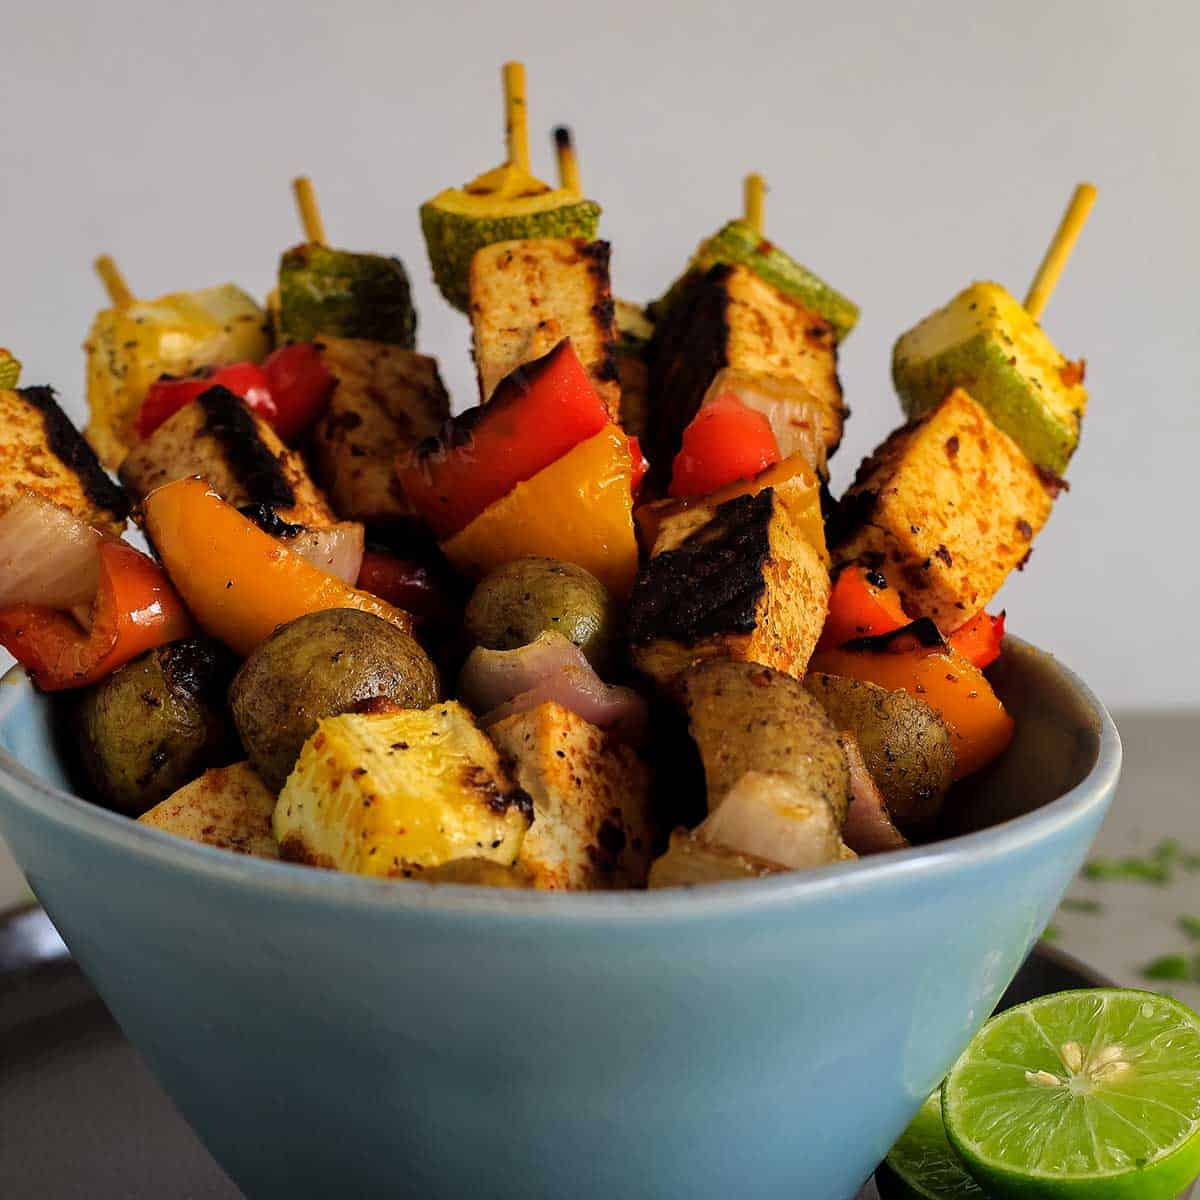 Bowl of tofu skewers with skewers standing up in bowl for serving.